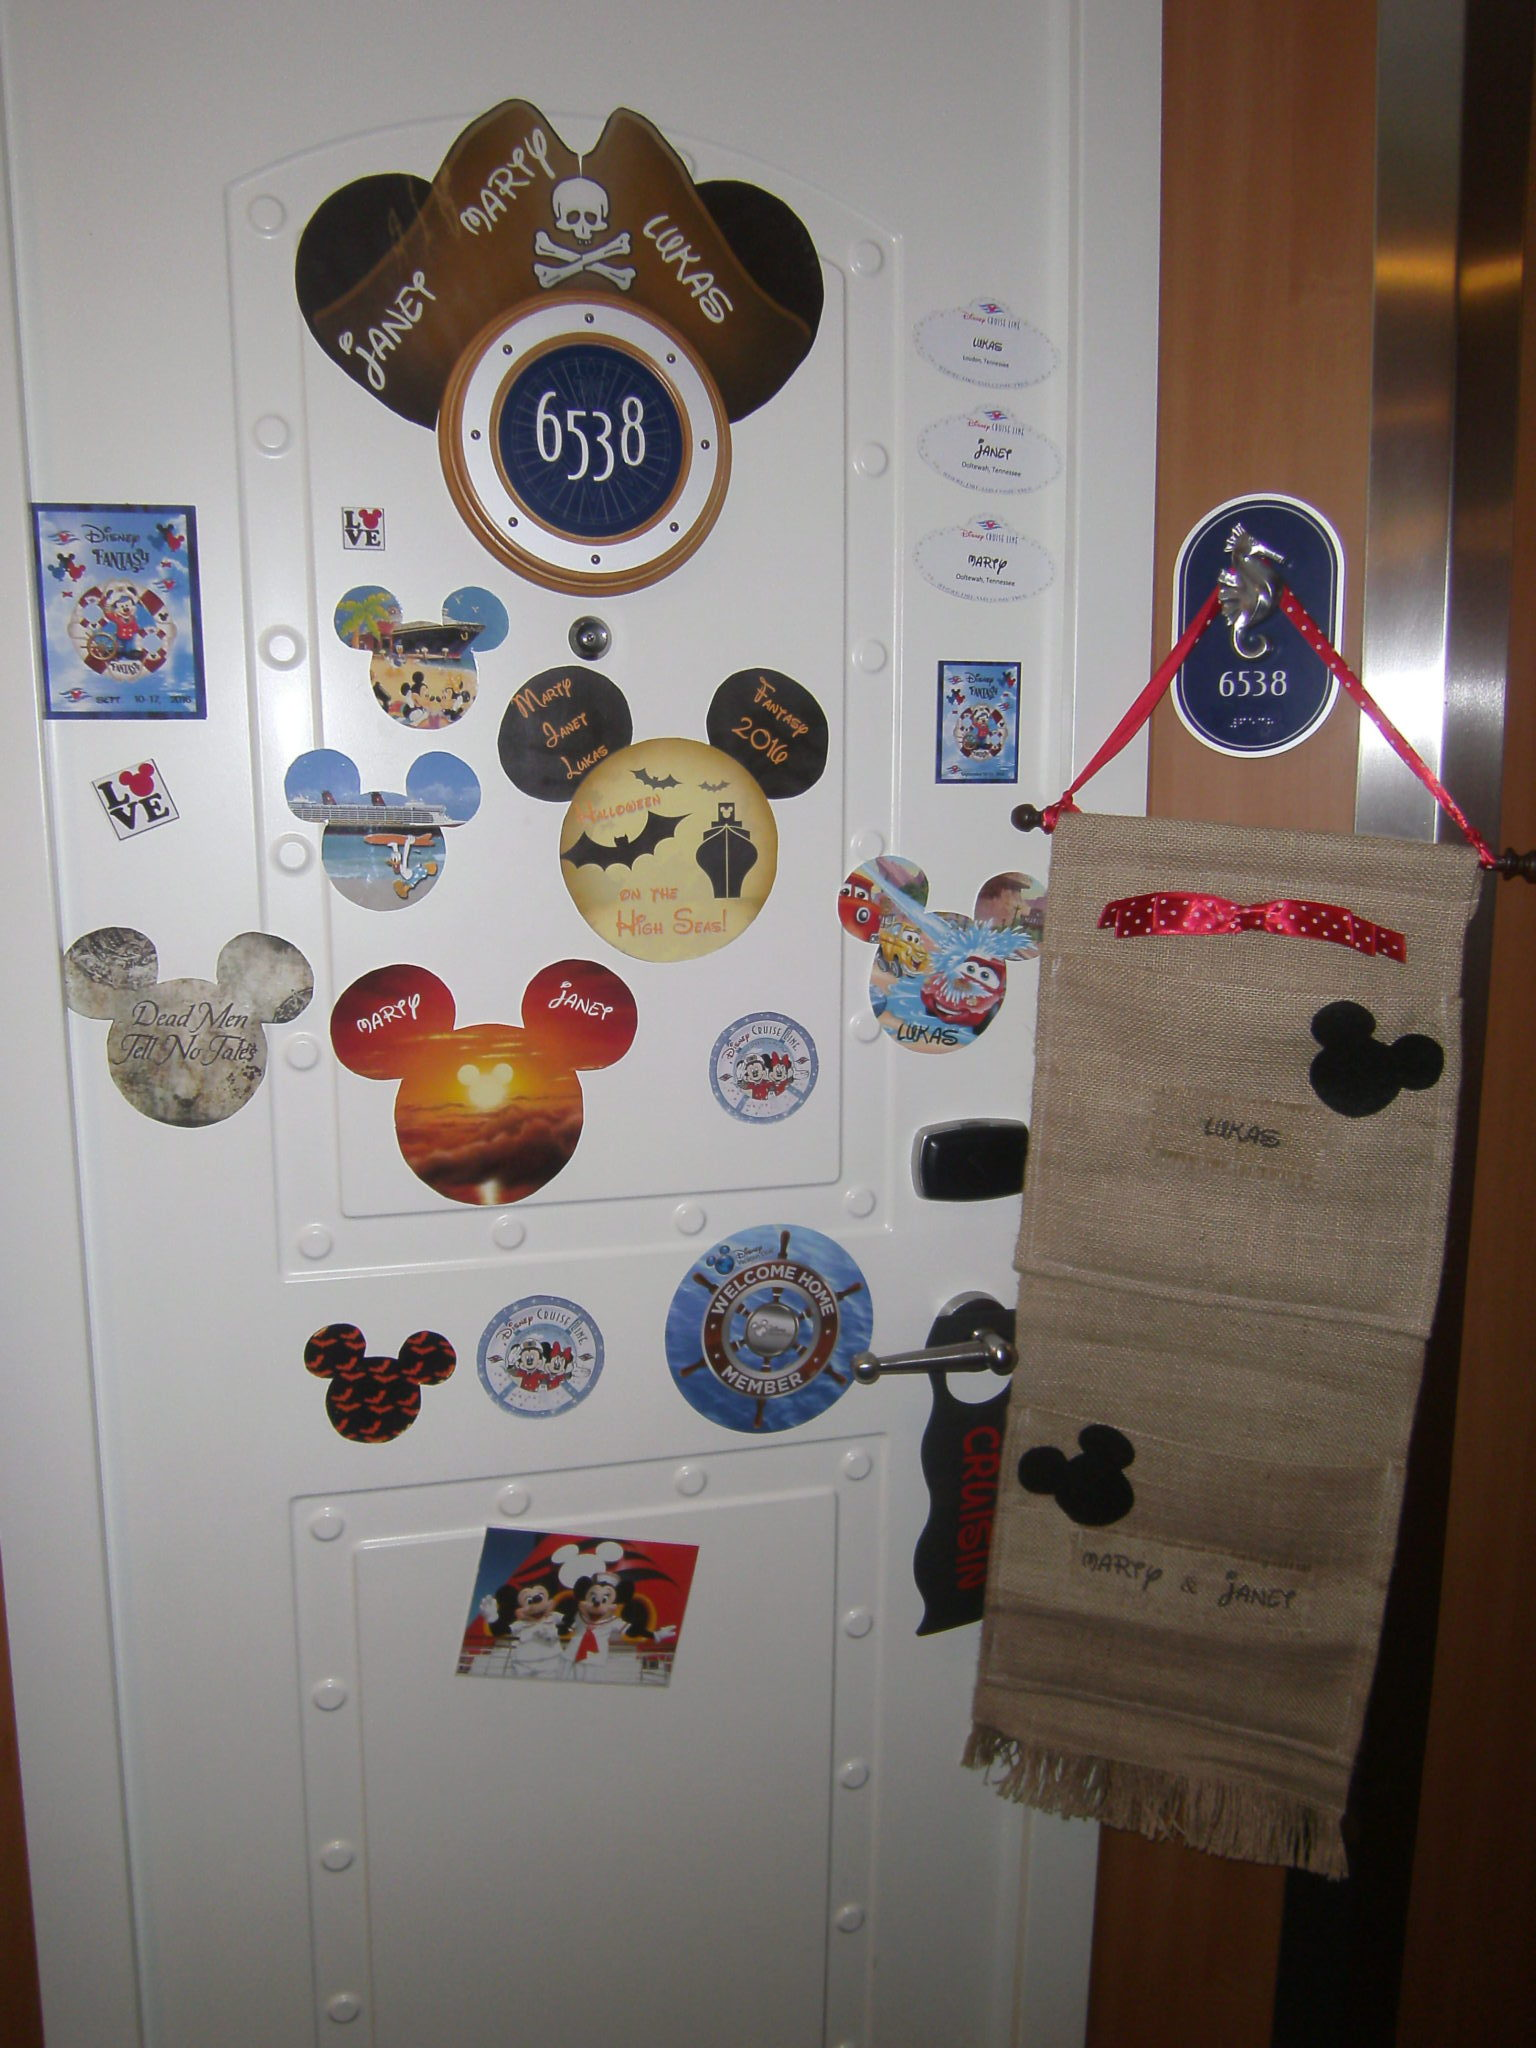 Easy Steps For Diy Disney Cruise Door Magnets To Decorate Your Cabin